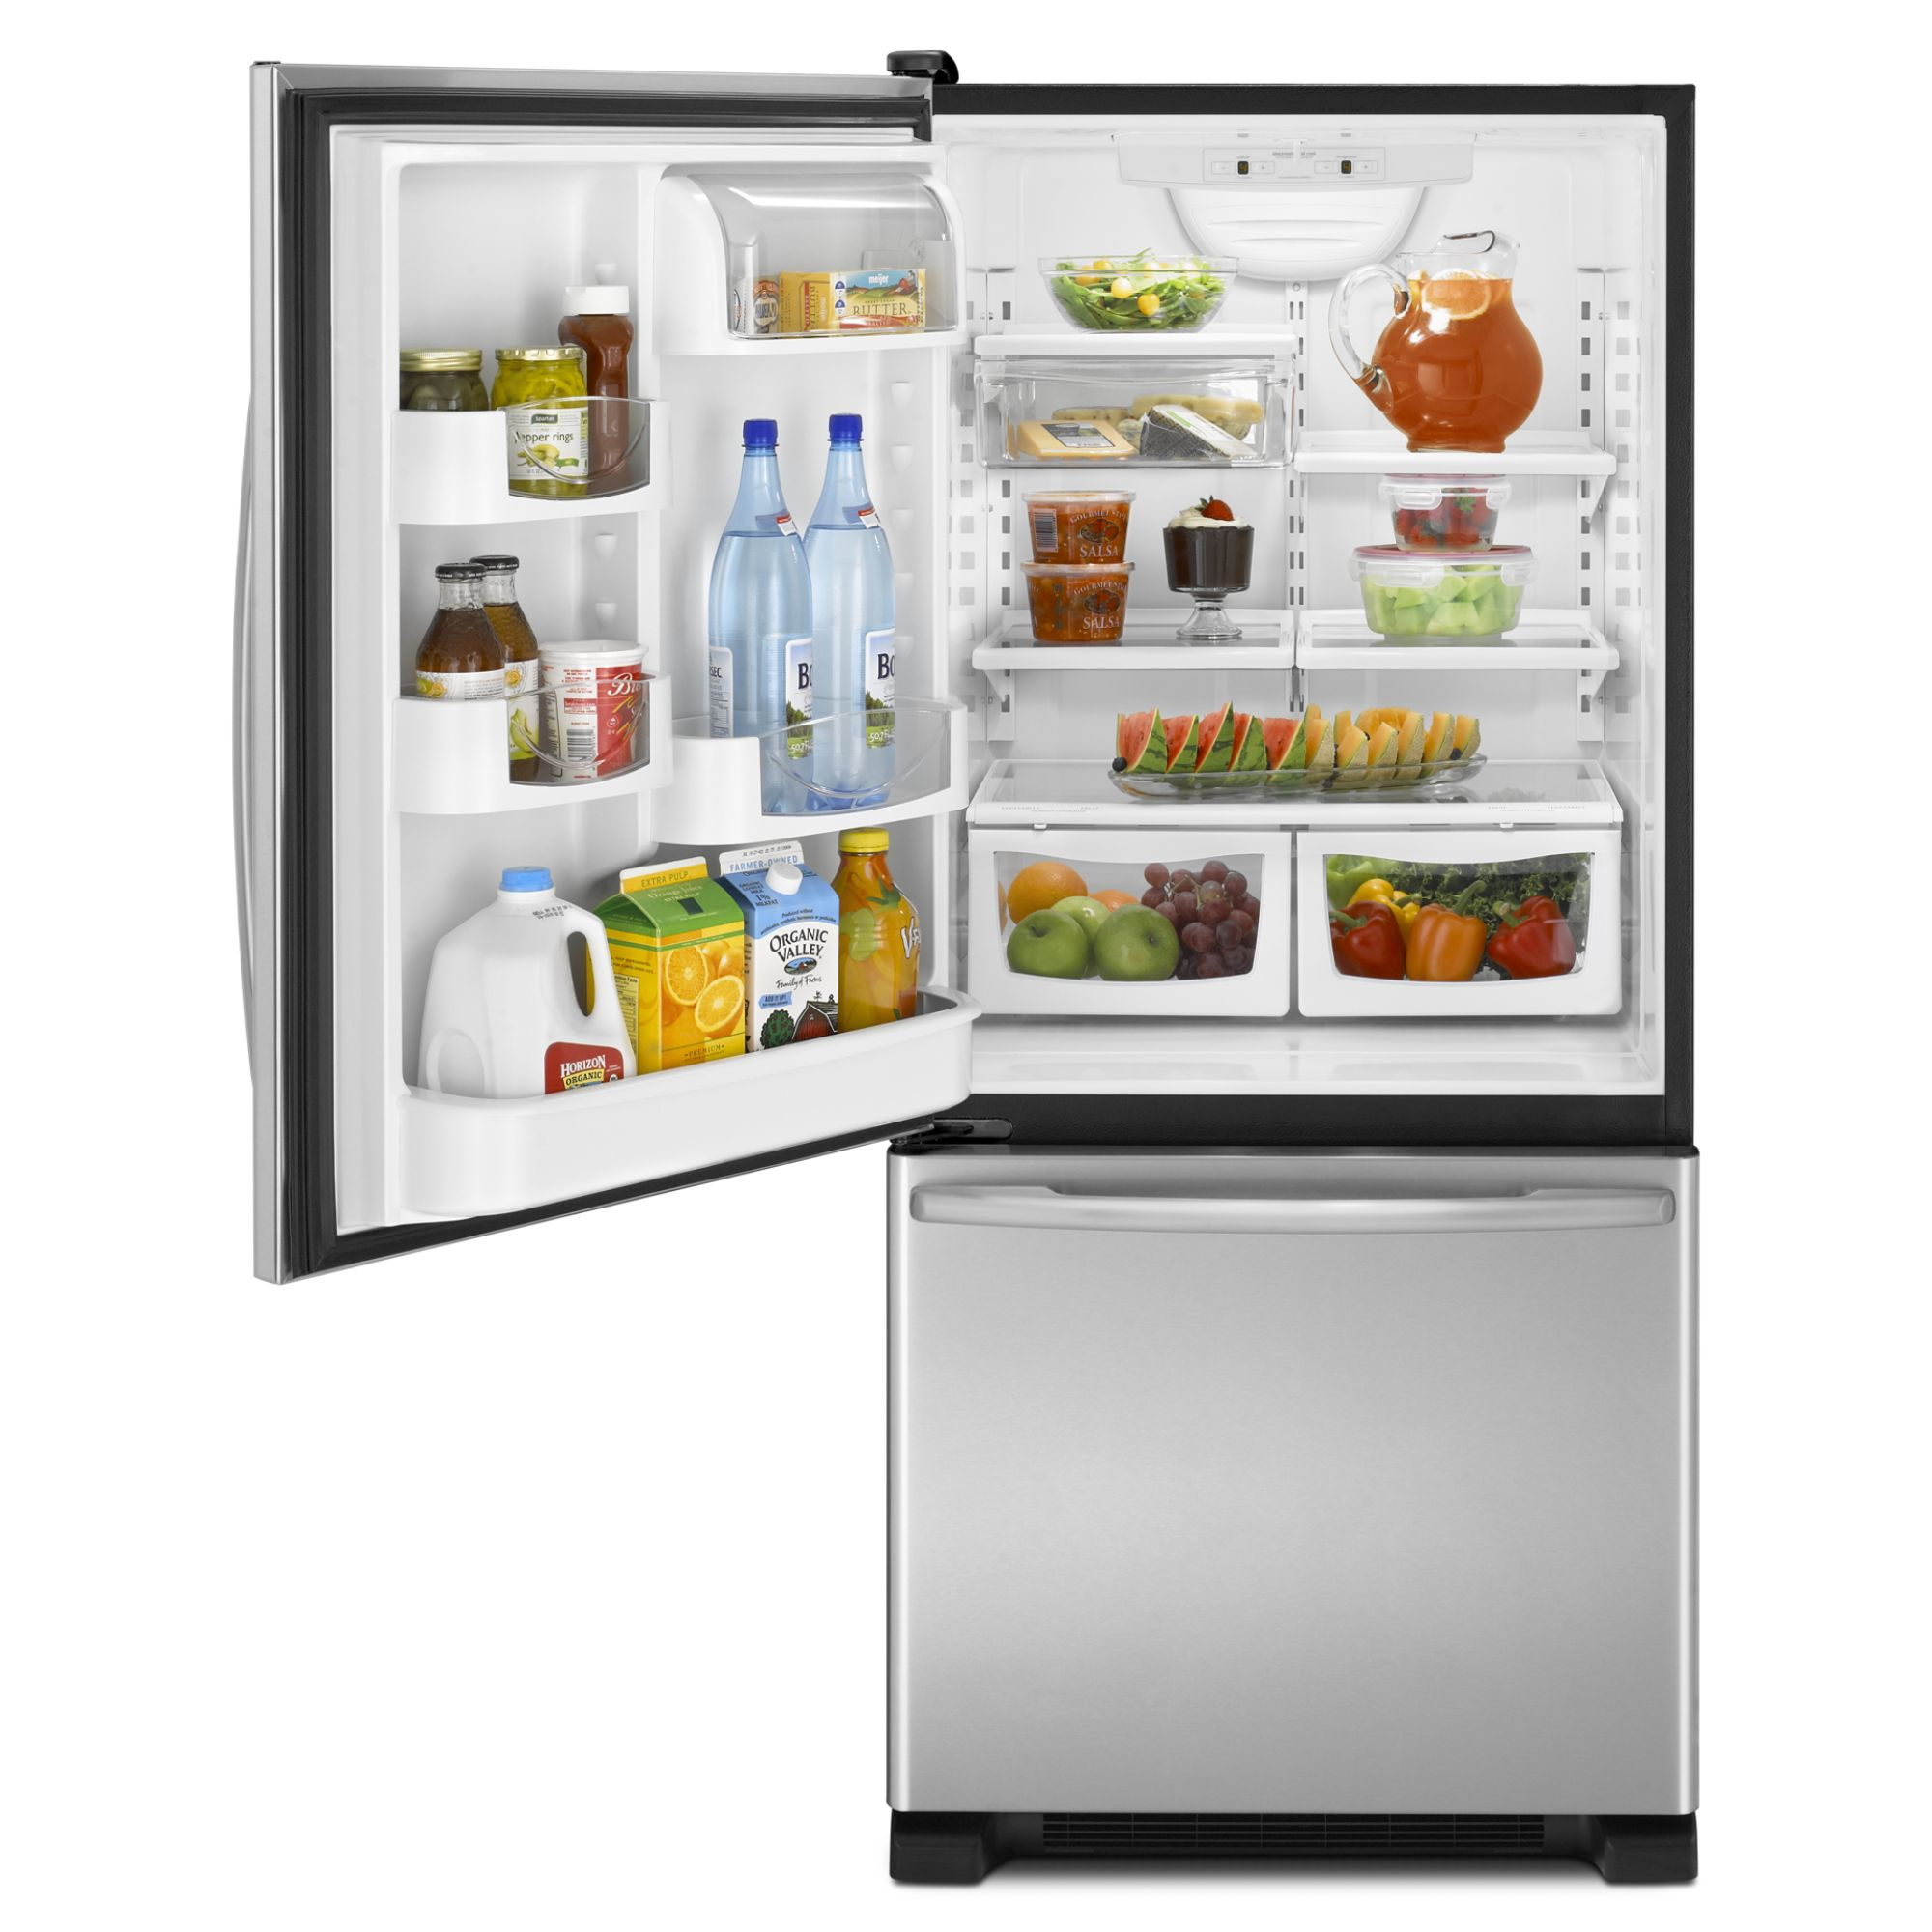 Maytag 21.9 cu. ft. Bottom-Freezer Refrigerator - Right Swing Door - Stainless Steel